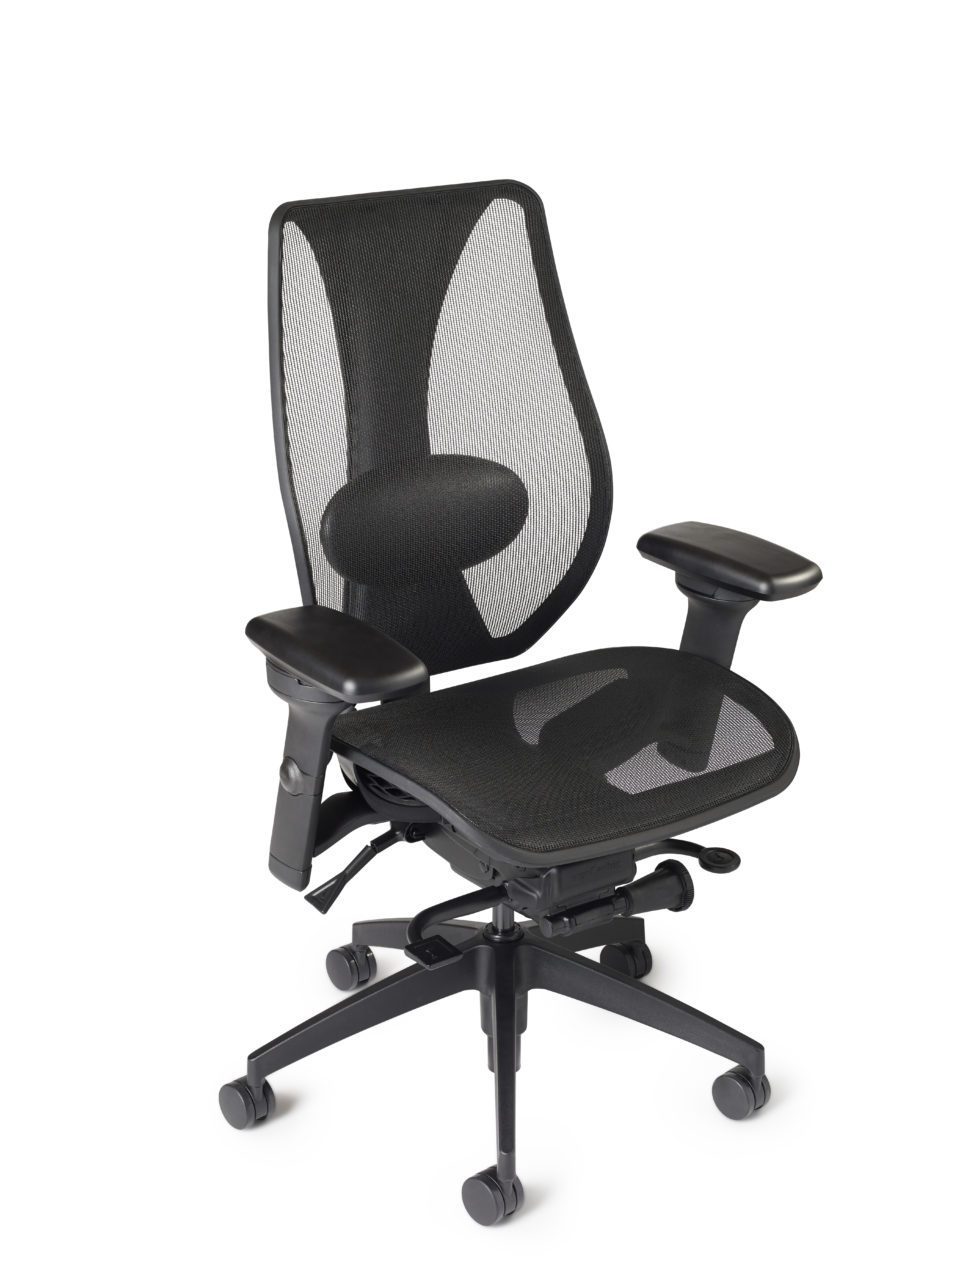 24 hour office chair tcentric hybrid ergonomic chair from. Black Bedroom Furniture Sets. Home Design Ideas